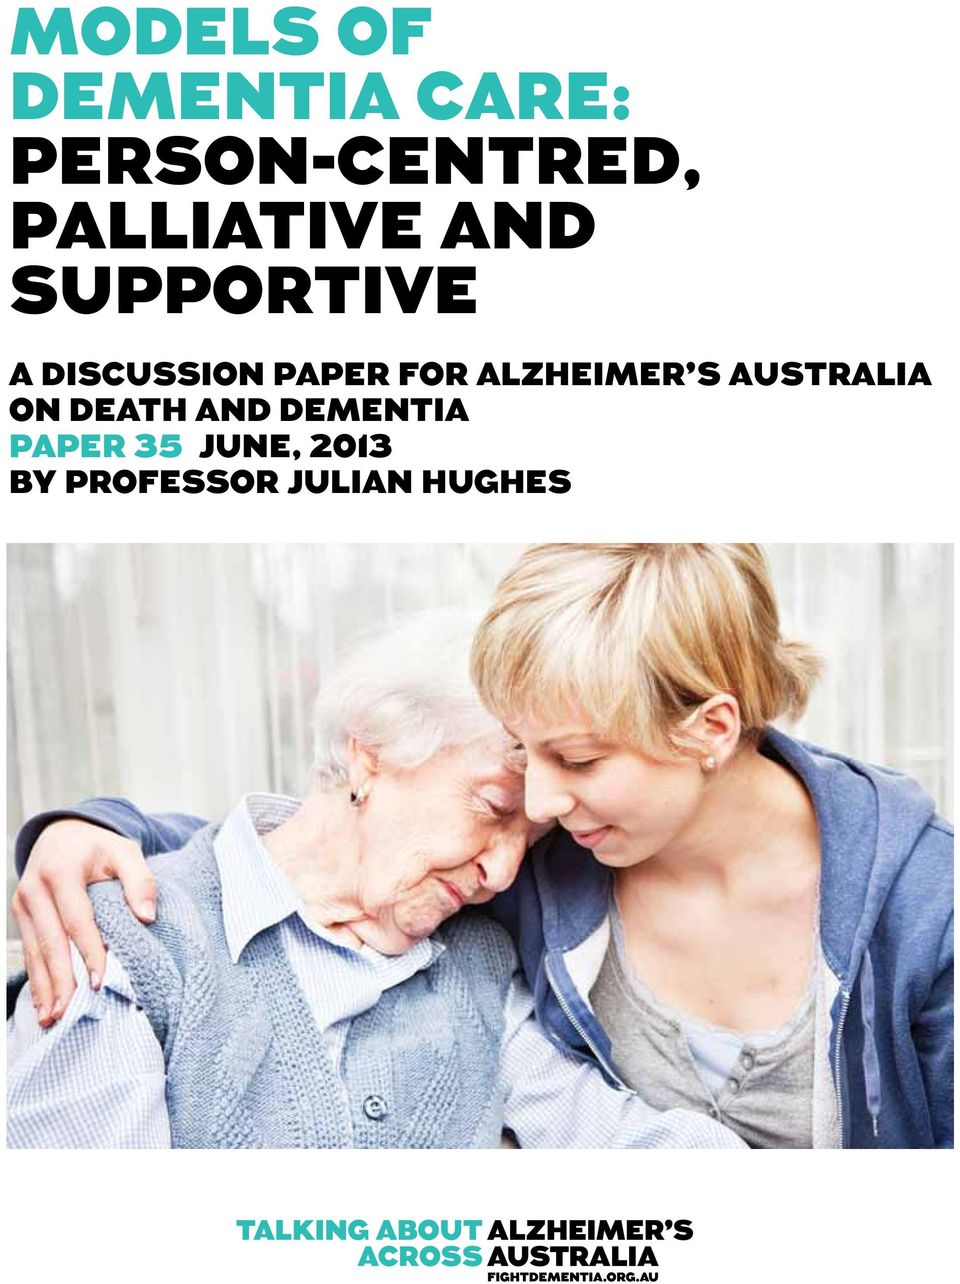 FOR alzheimer's australia on Death and